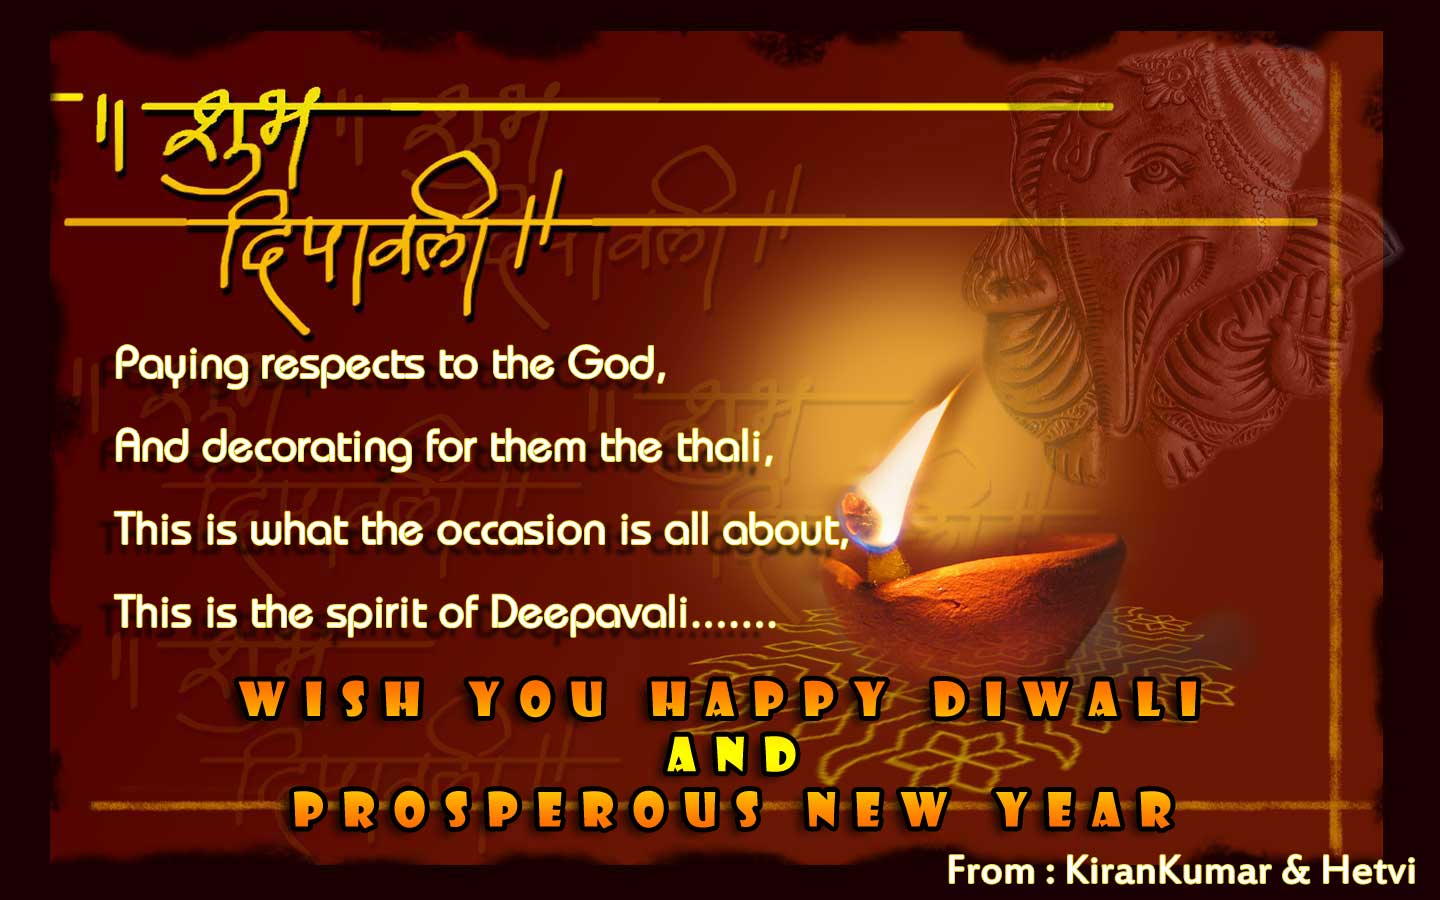 interesting stories happy diwali and new year